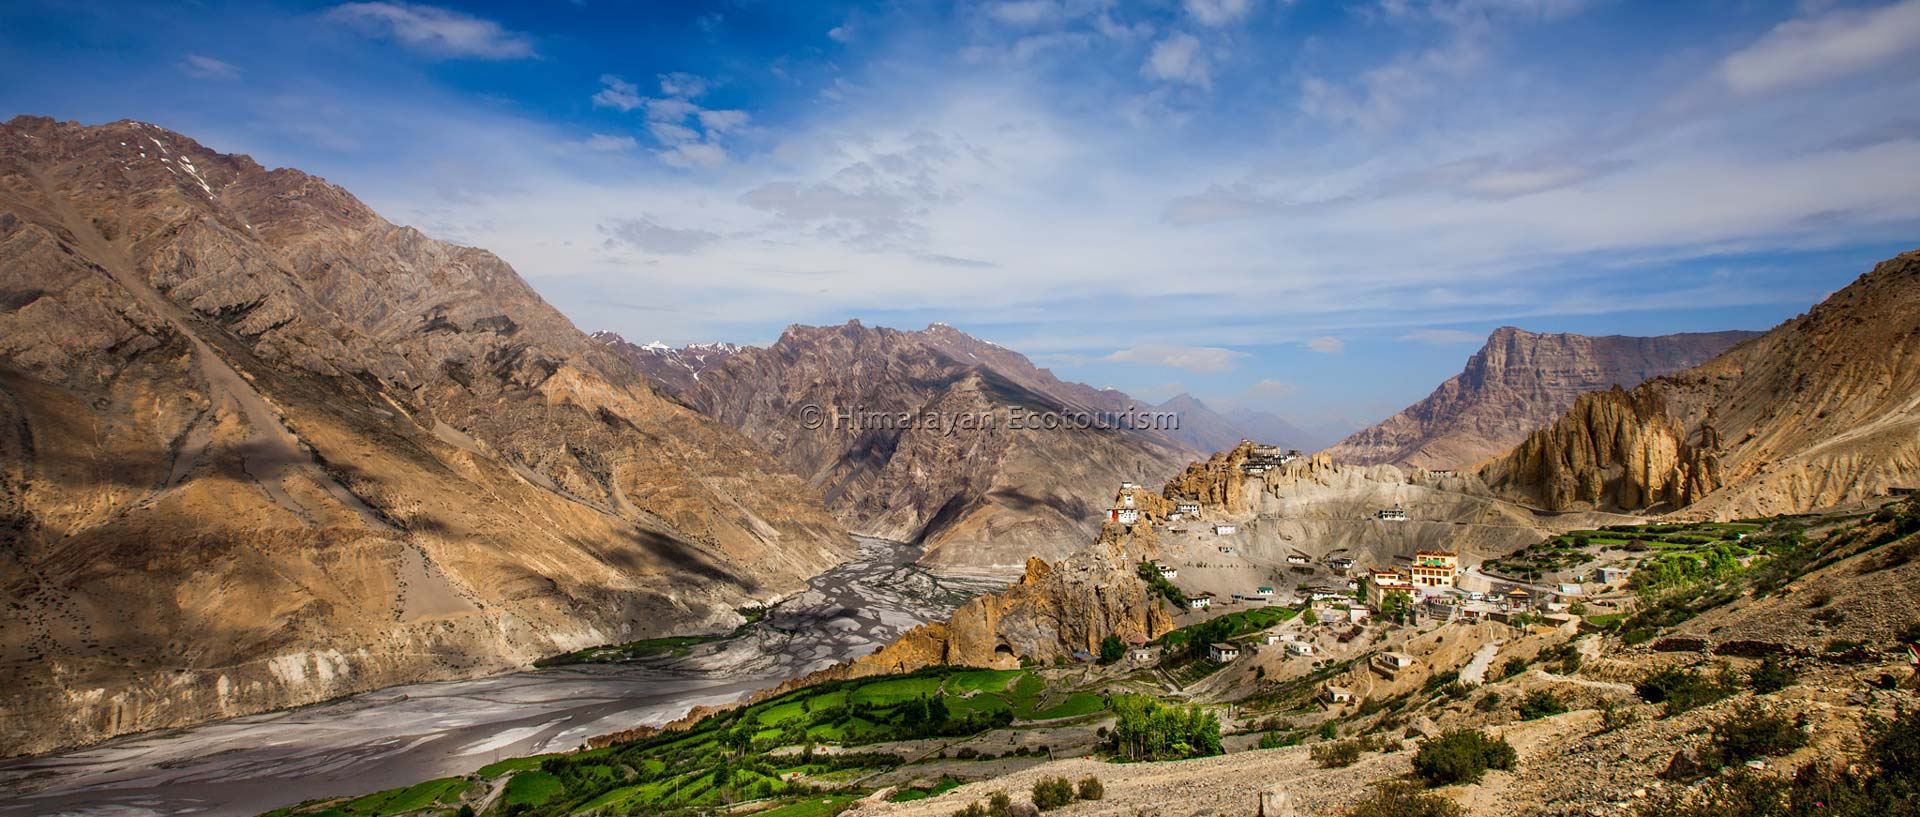 Dhankar Spiti valley